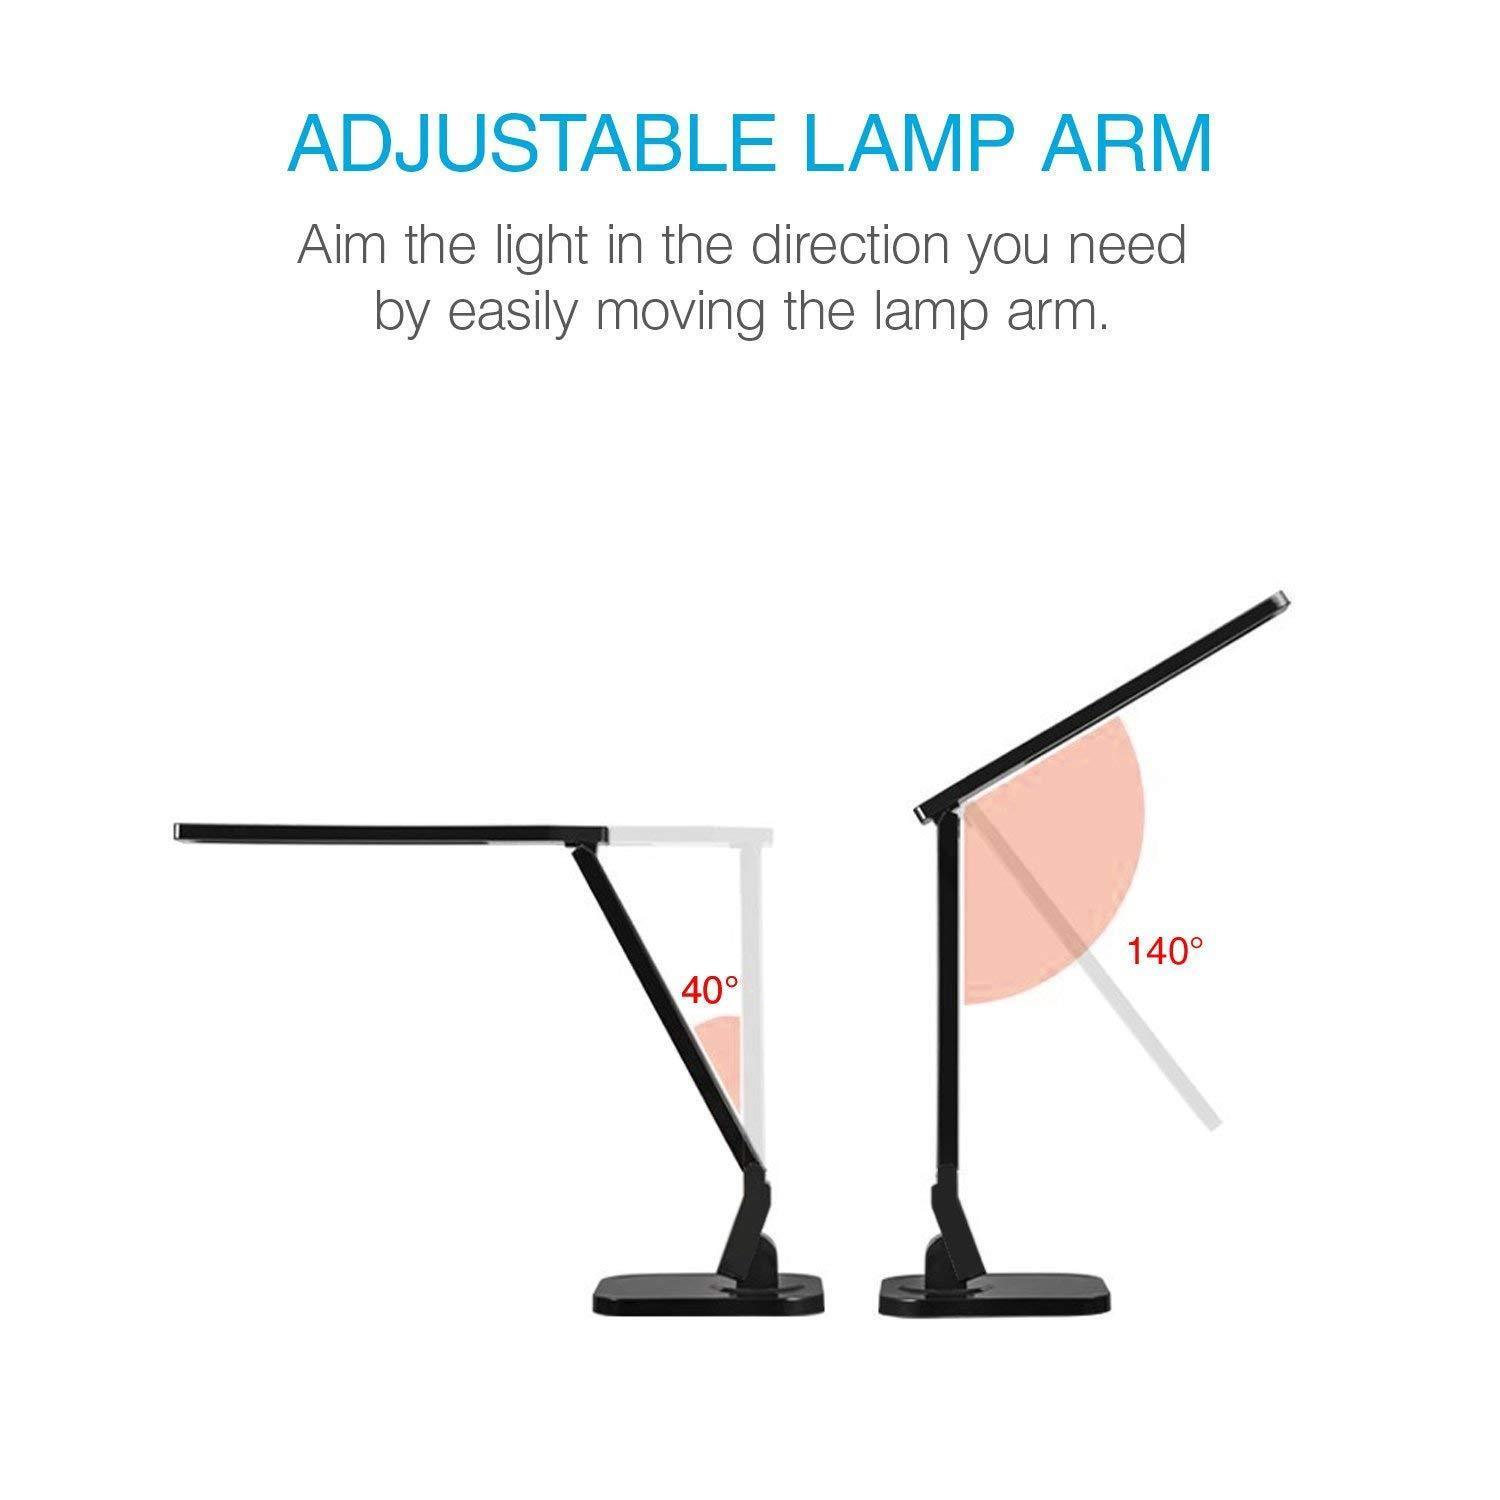 7W LED Desk Lamp 530 Lumens 5 Dimming Levels Touching Foldable Table Light Home